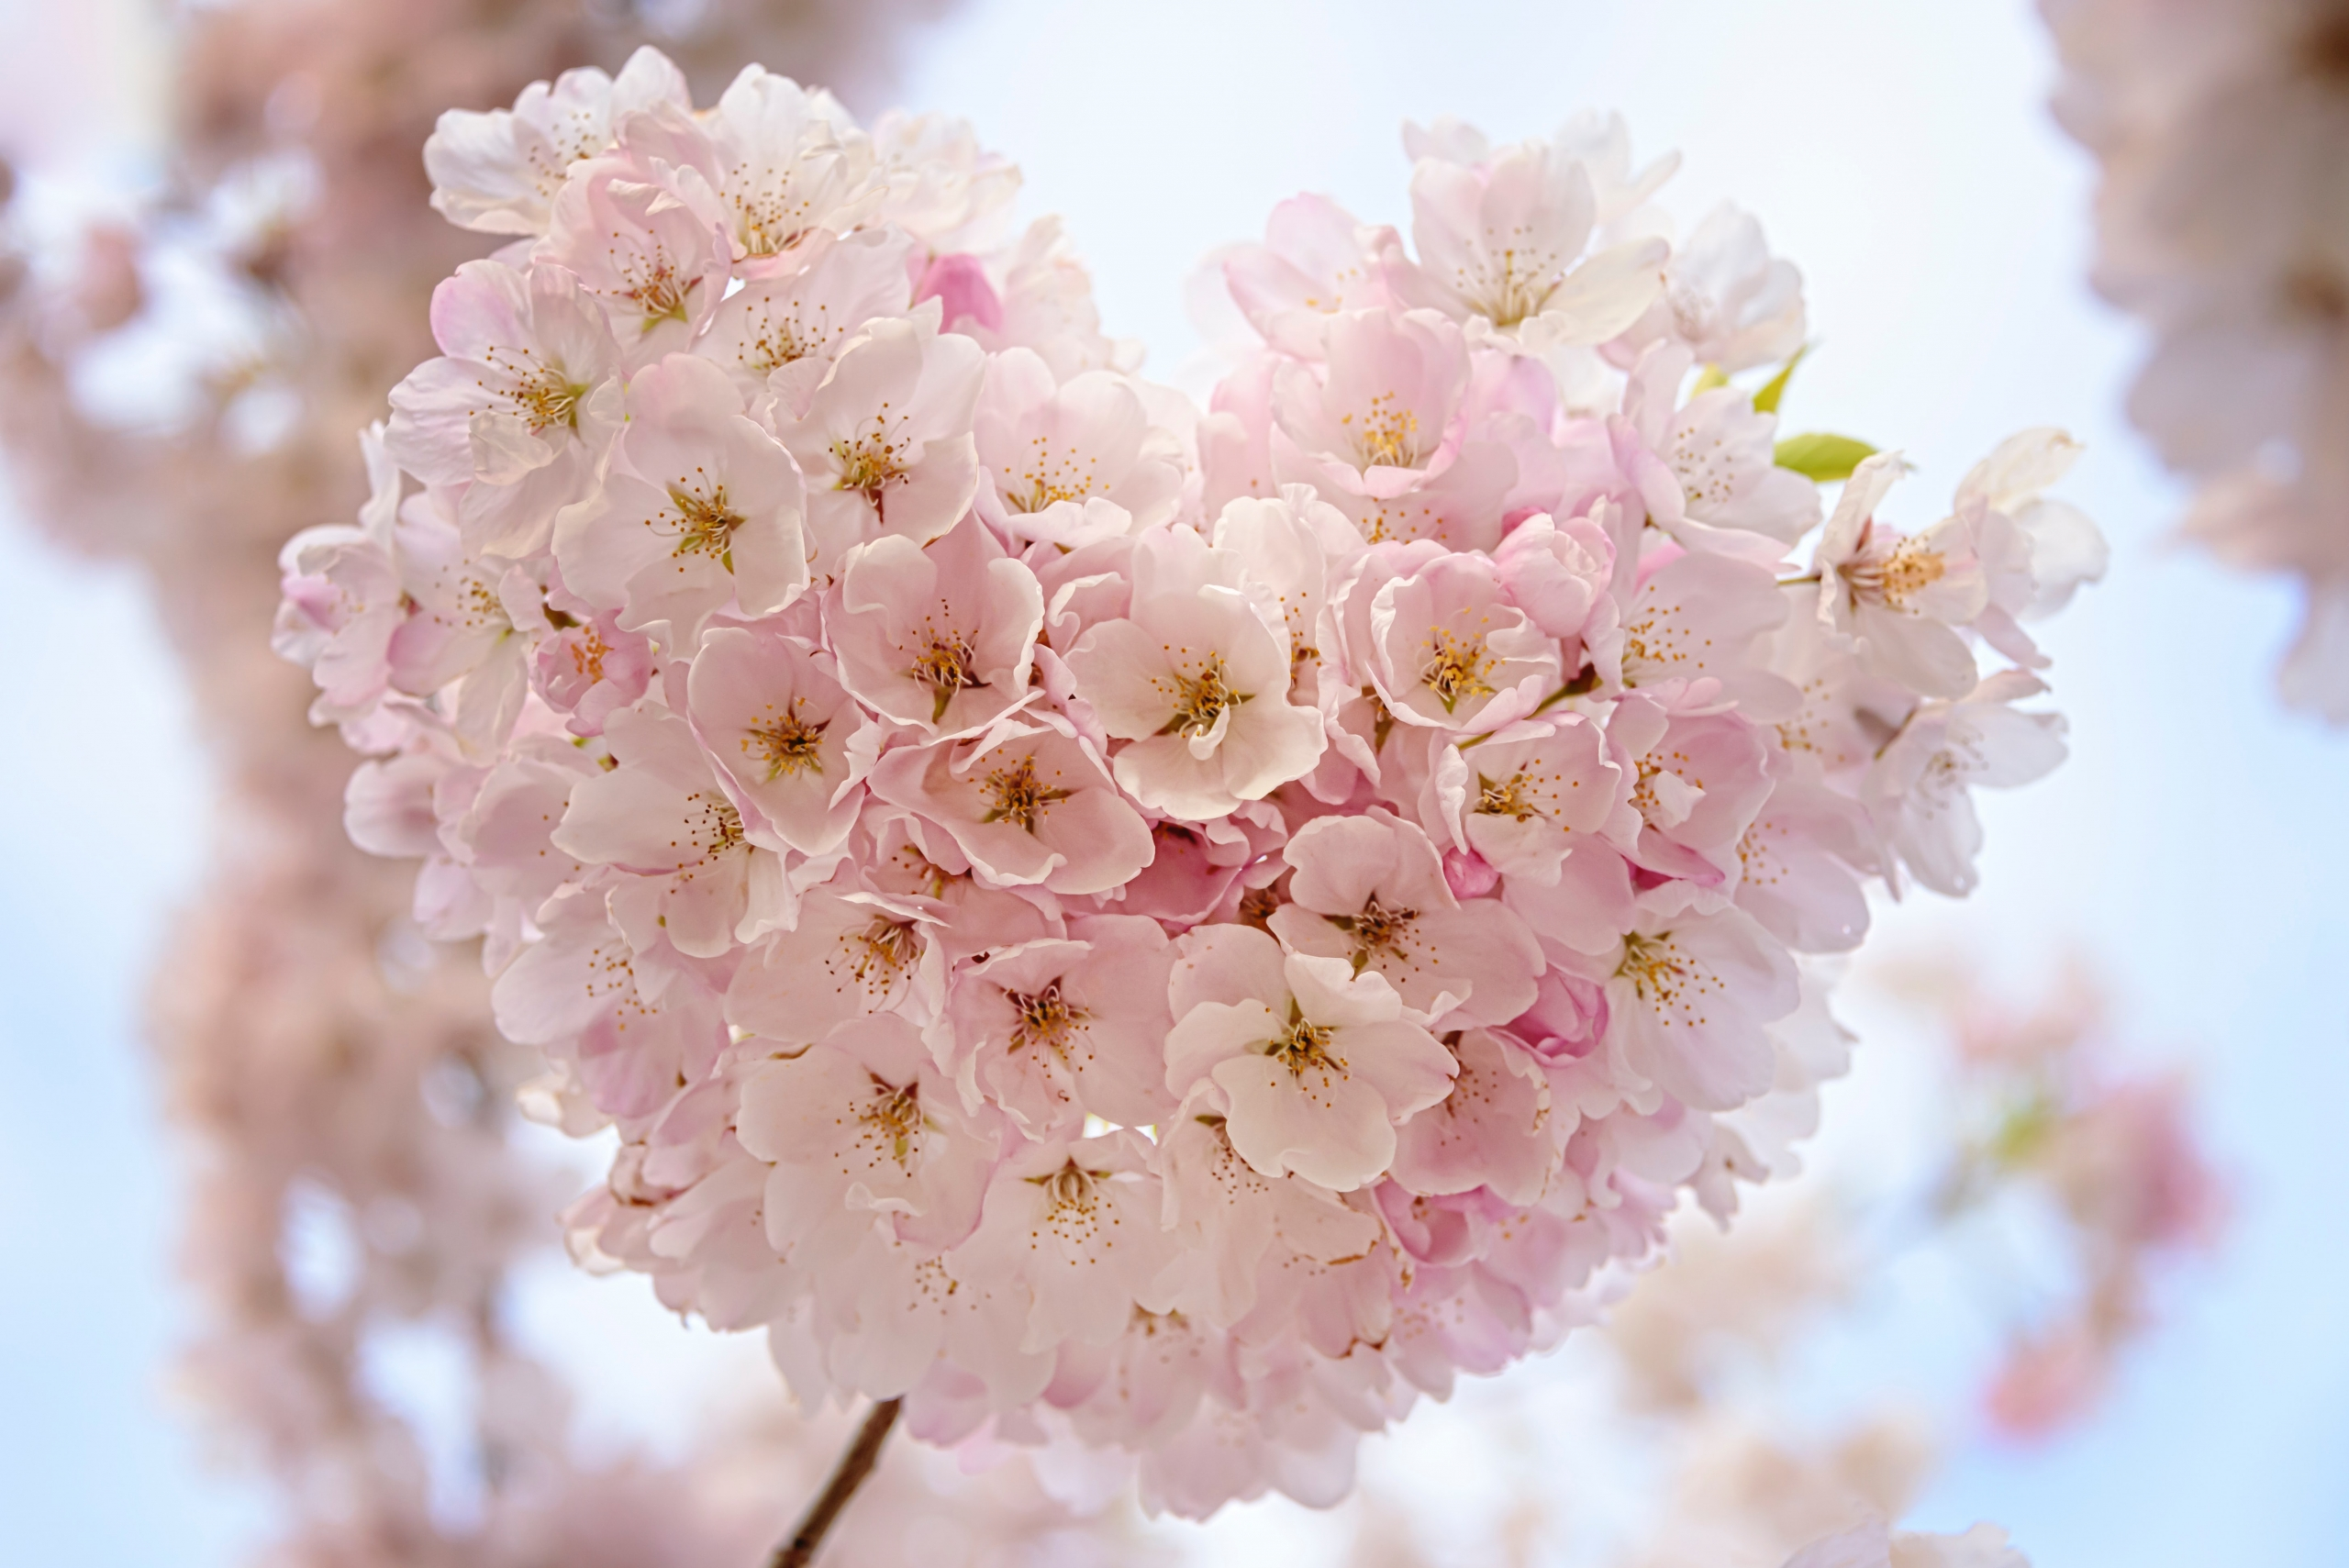 Small pink flowers in the shape of a heart